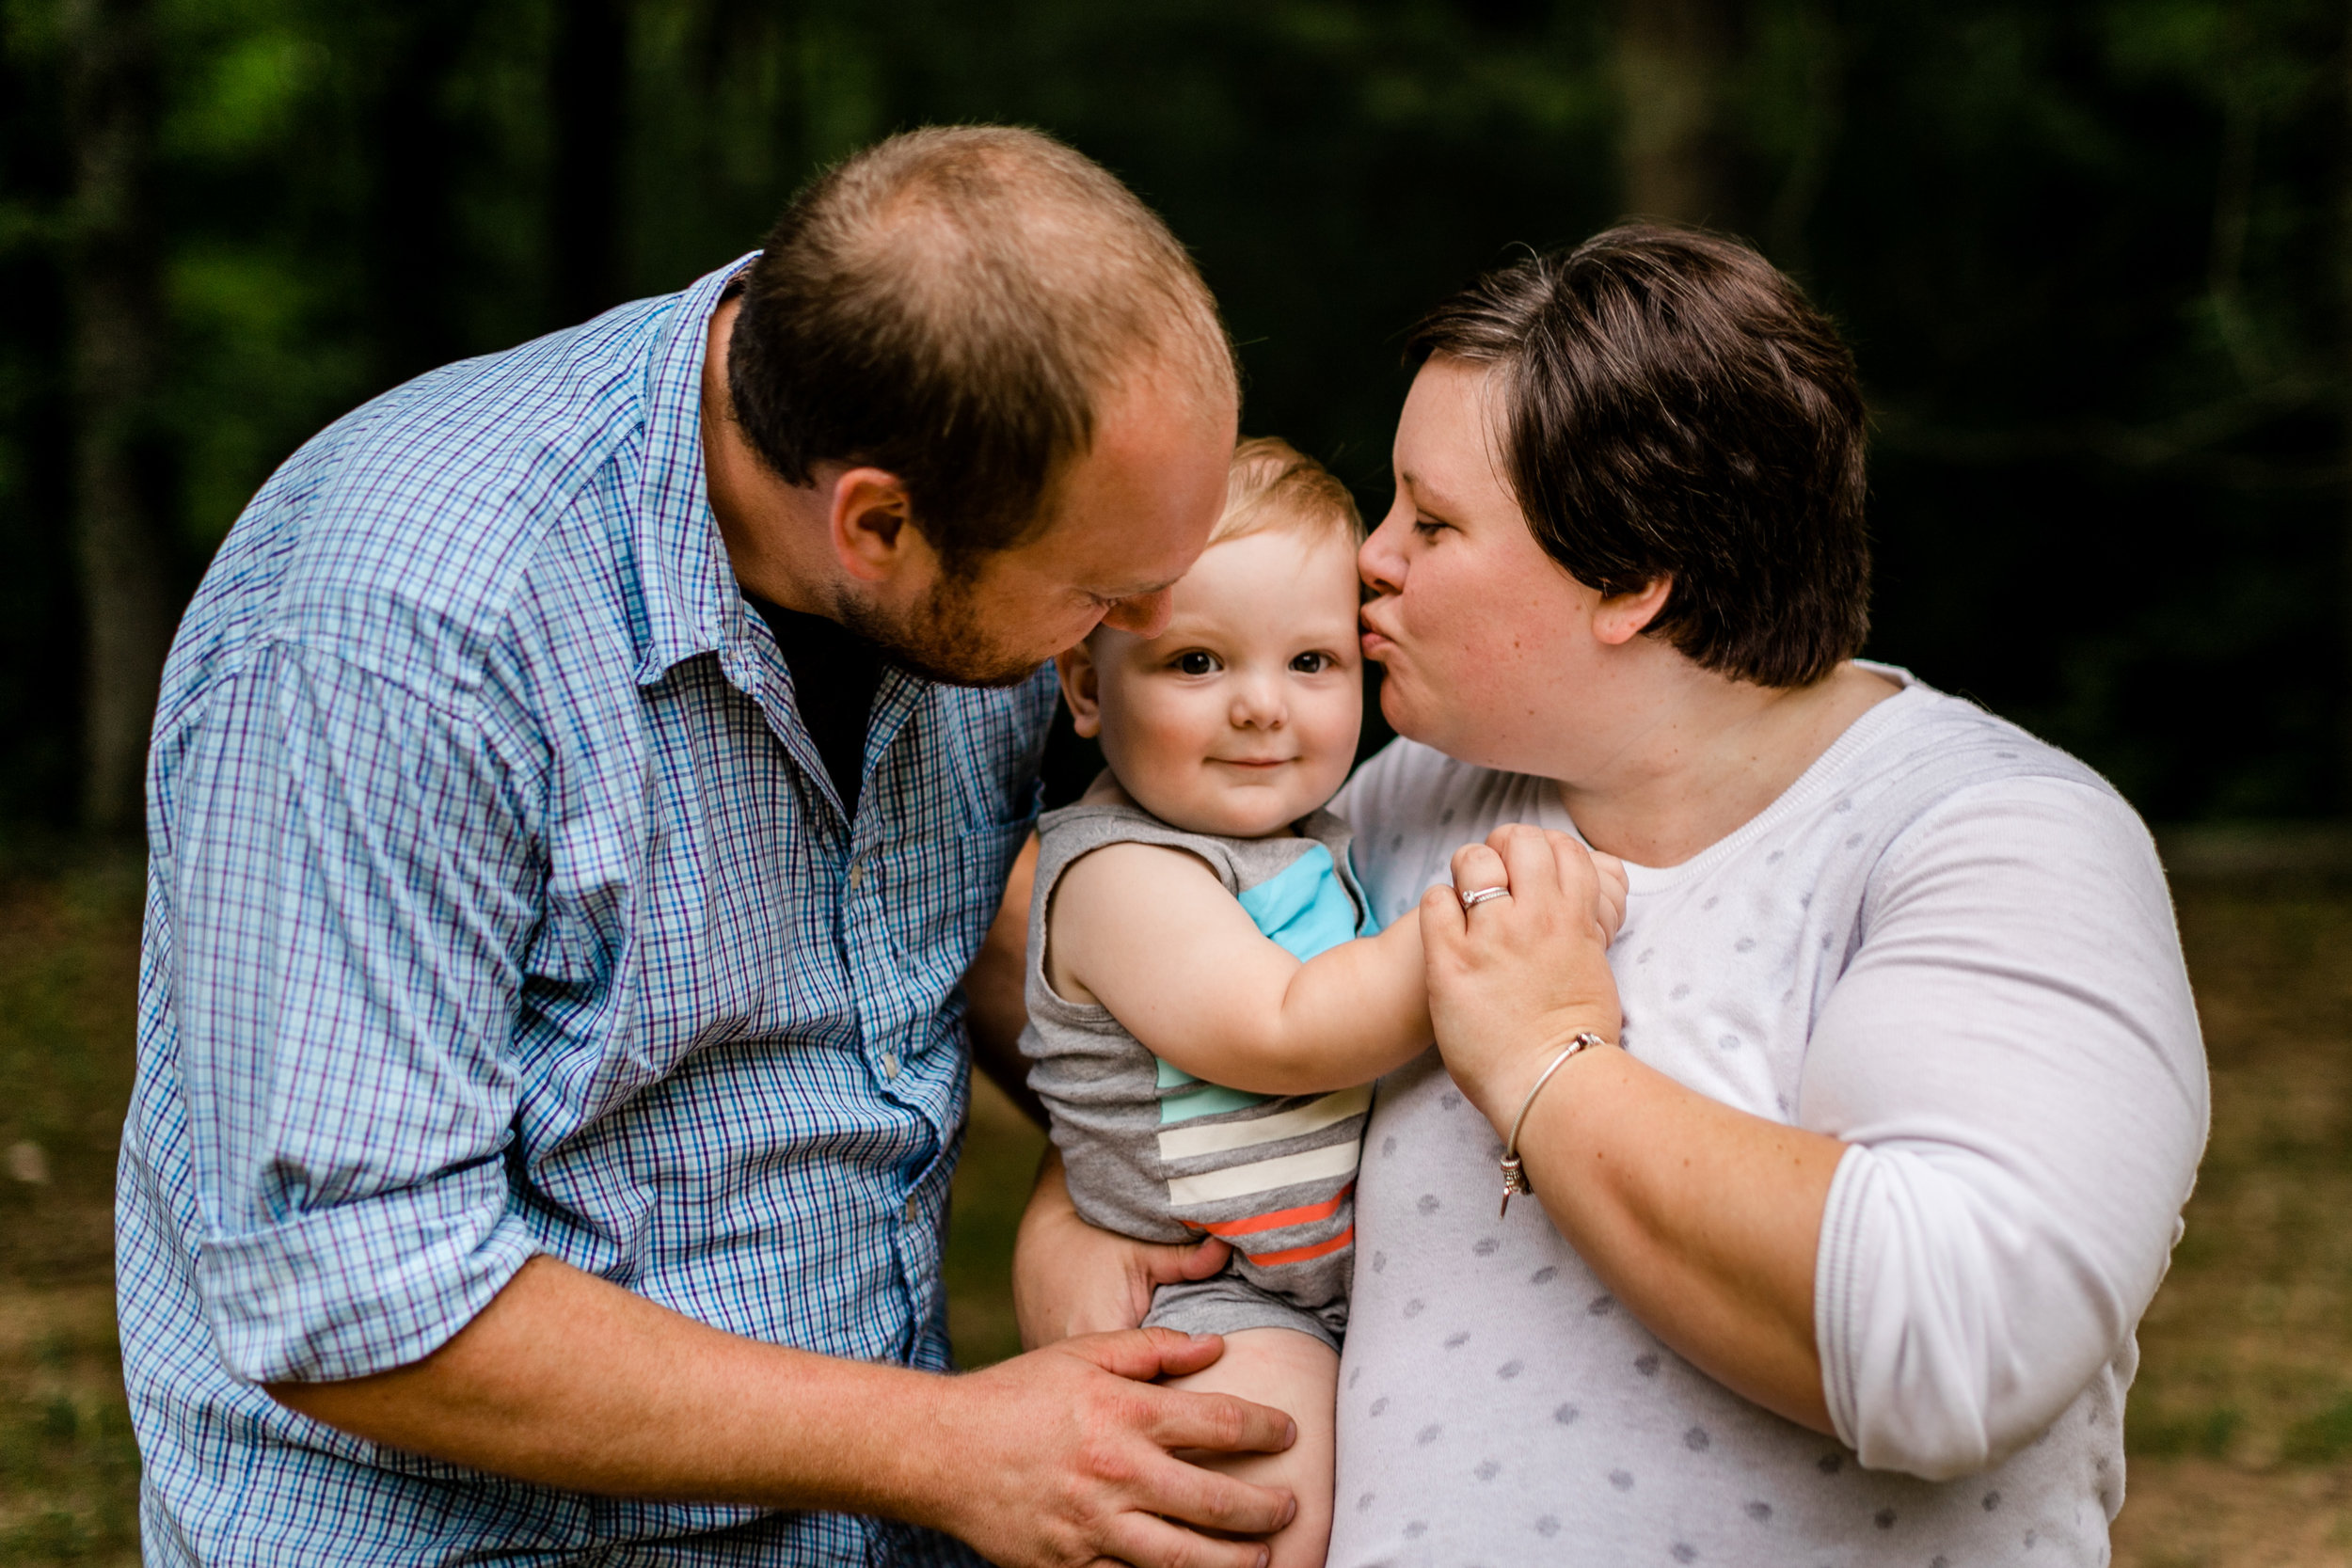 Durham Family Photographer | By G. Lin Photography | Outdoor portraits at Spruce Pine Lodge | Parents kissing son on cheeks